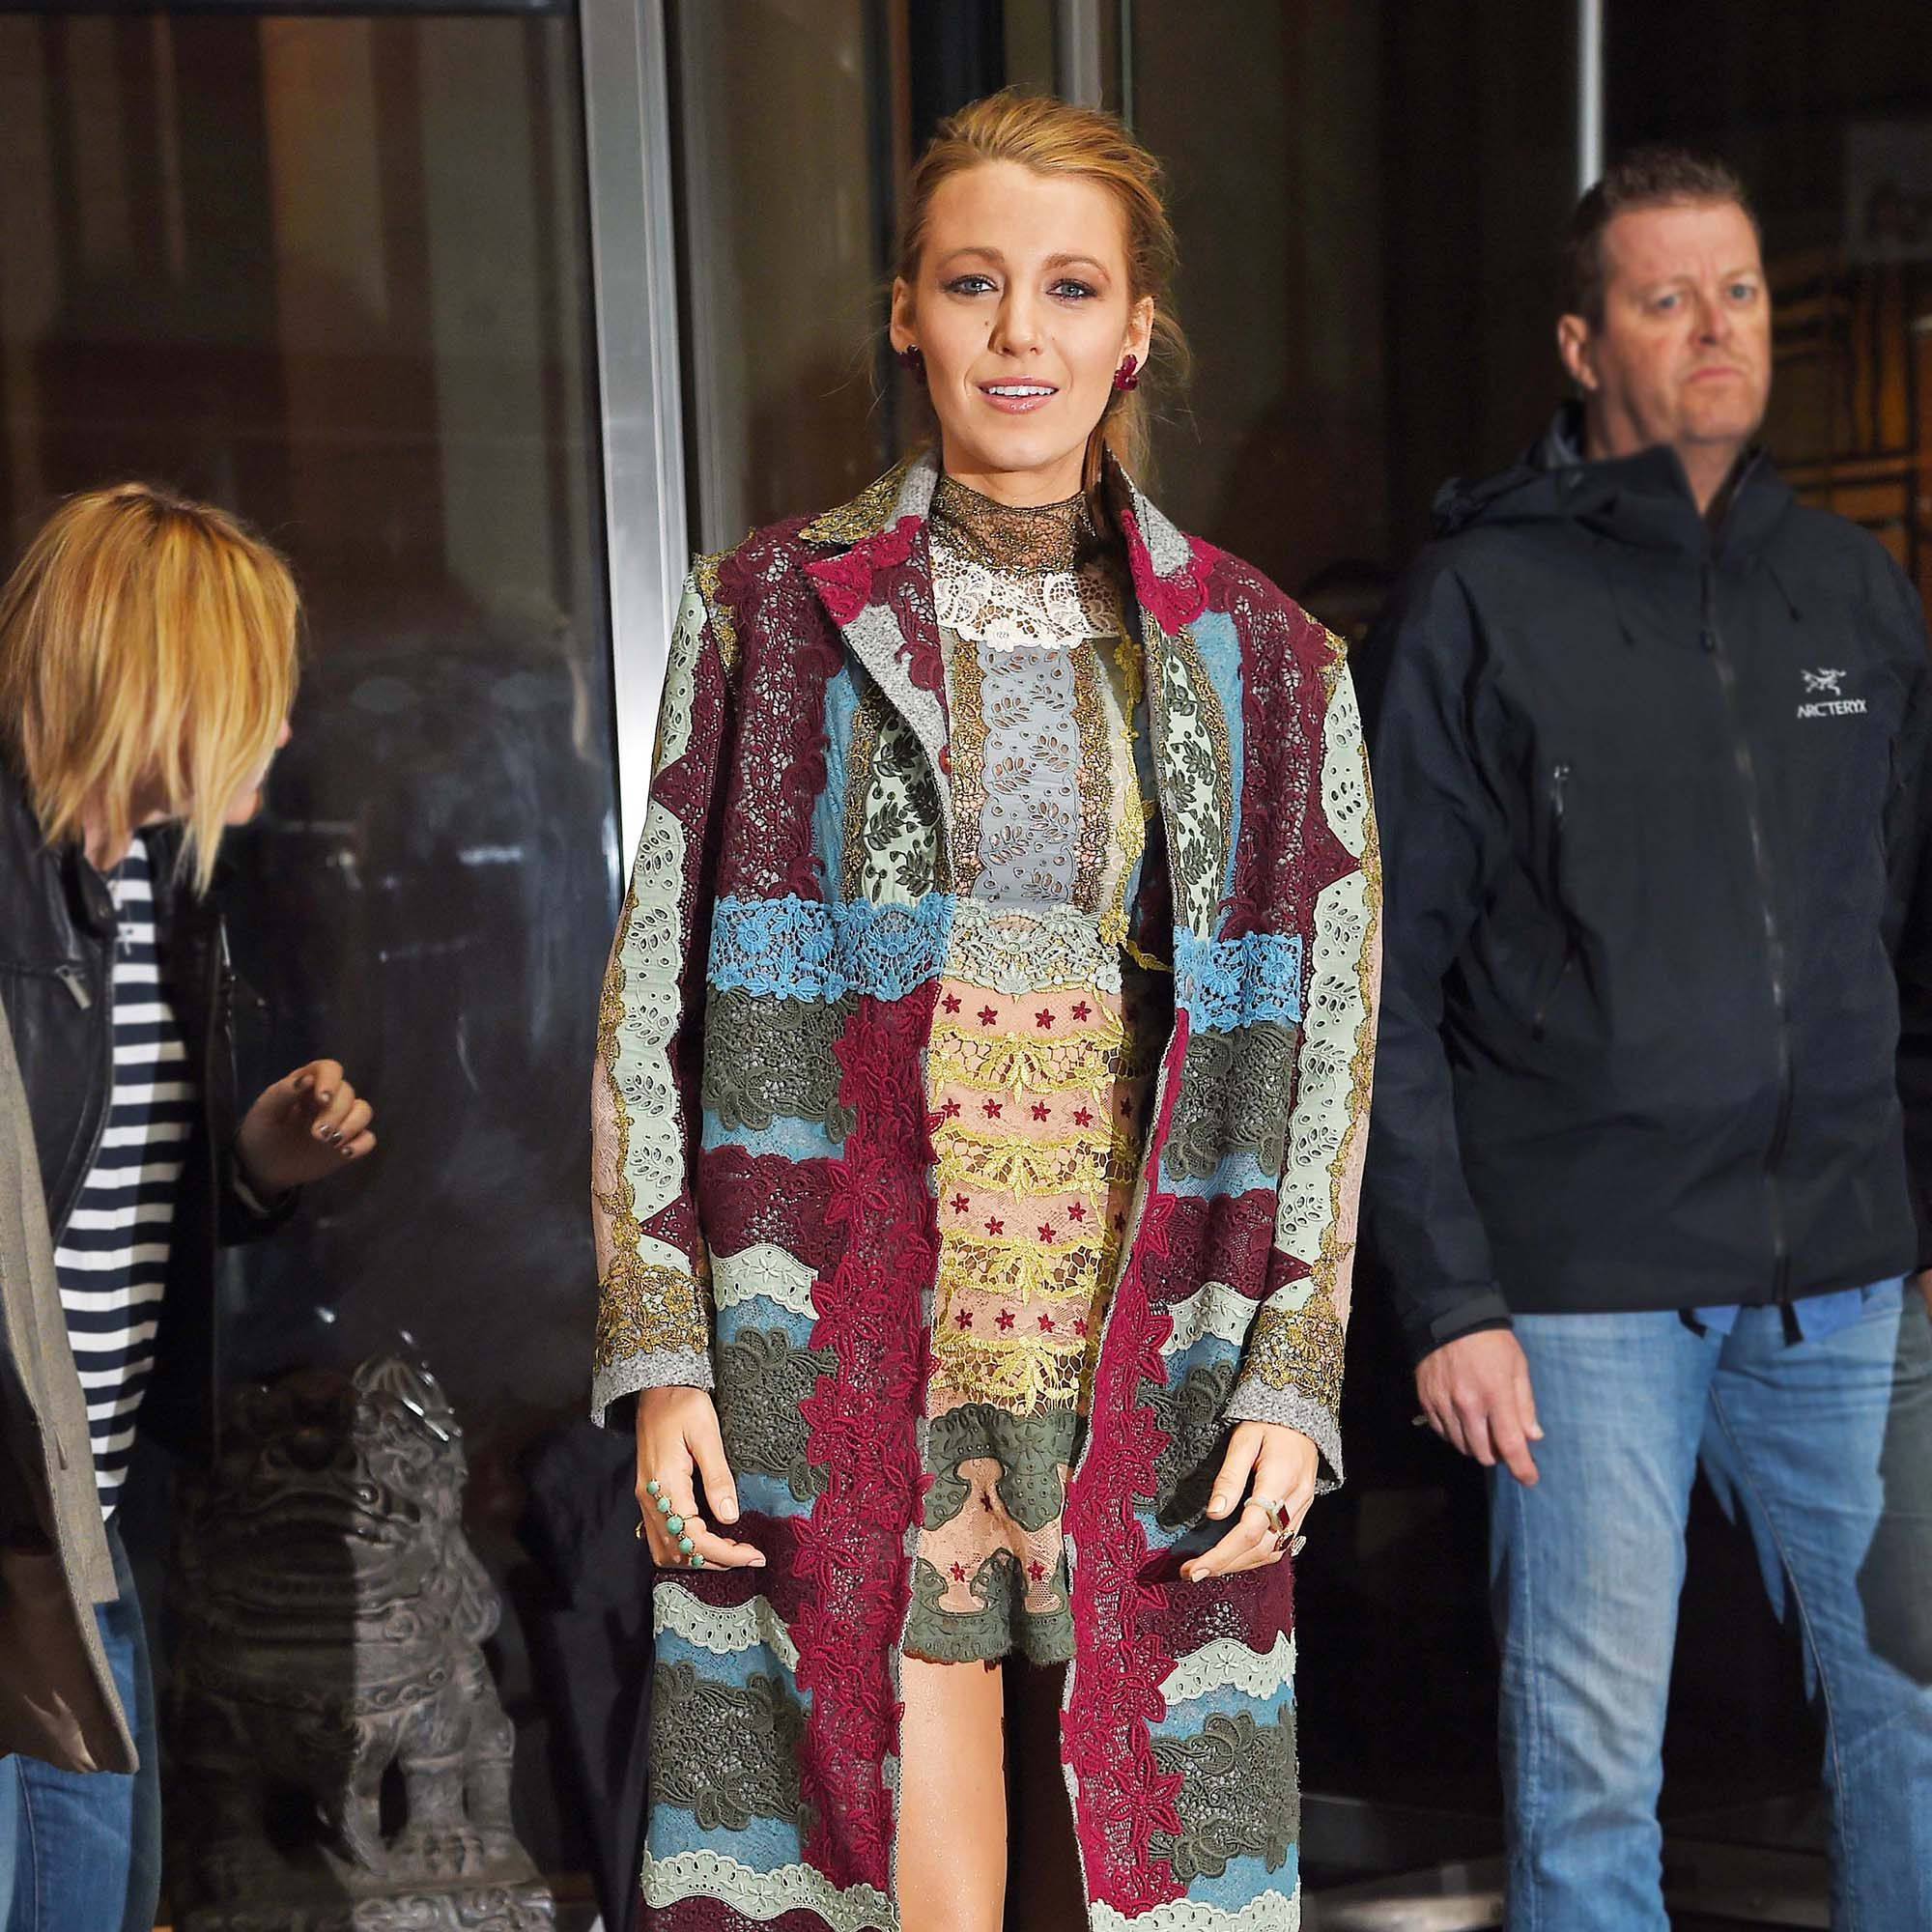 NEW YORK - APRIL 22: Blake Lively steps out of her Upper West Side Hotel on APRIL 22, 2015 in New York, New York.  (Photo by Josiah Kamau/BuzzFoto via Getty Images)